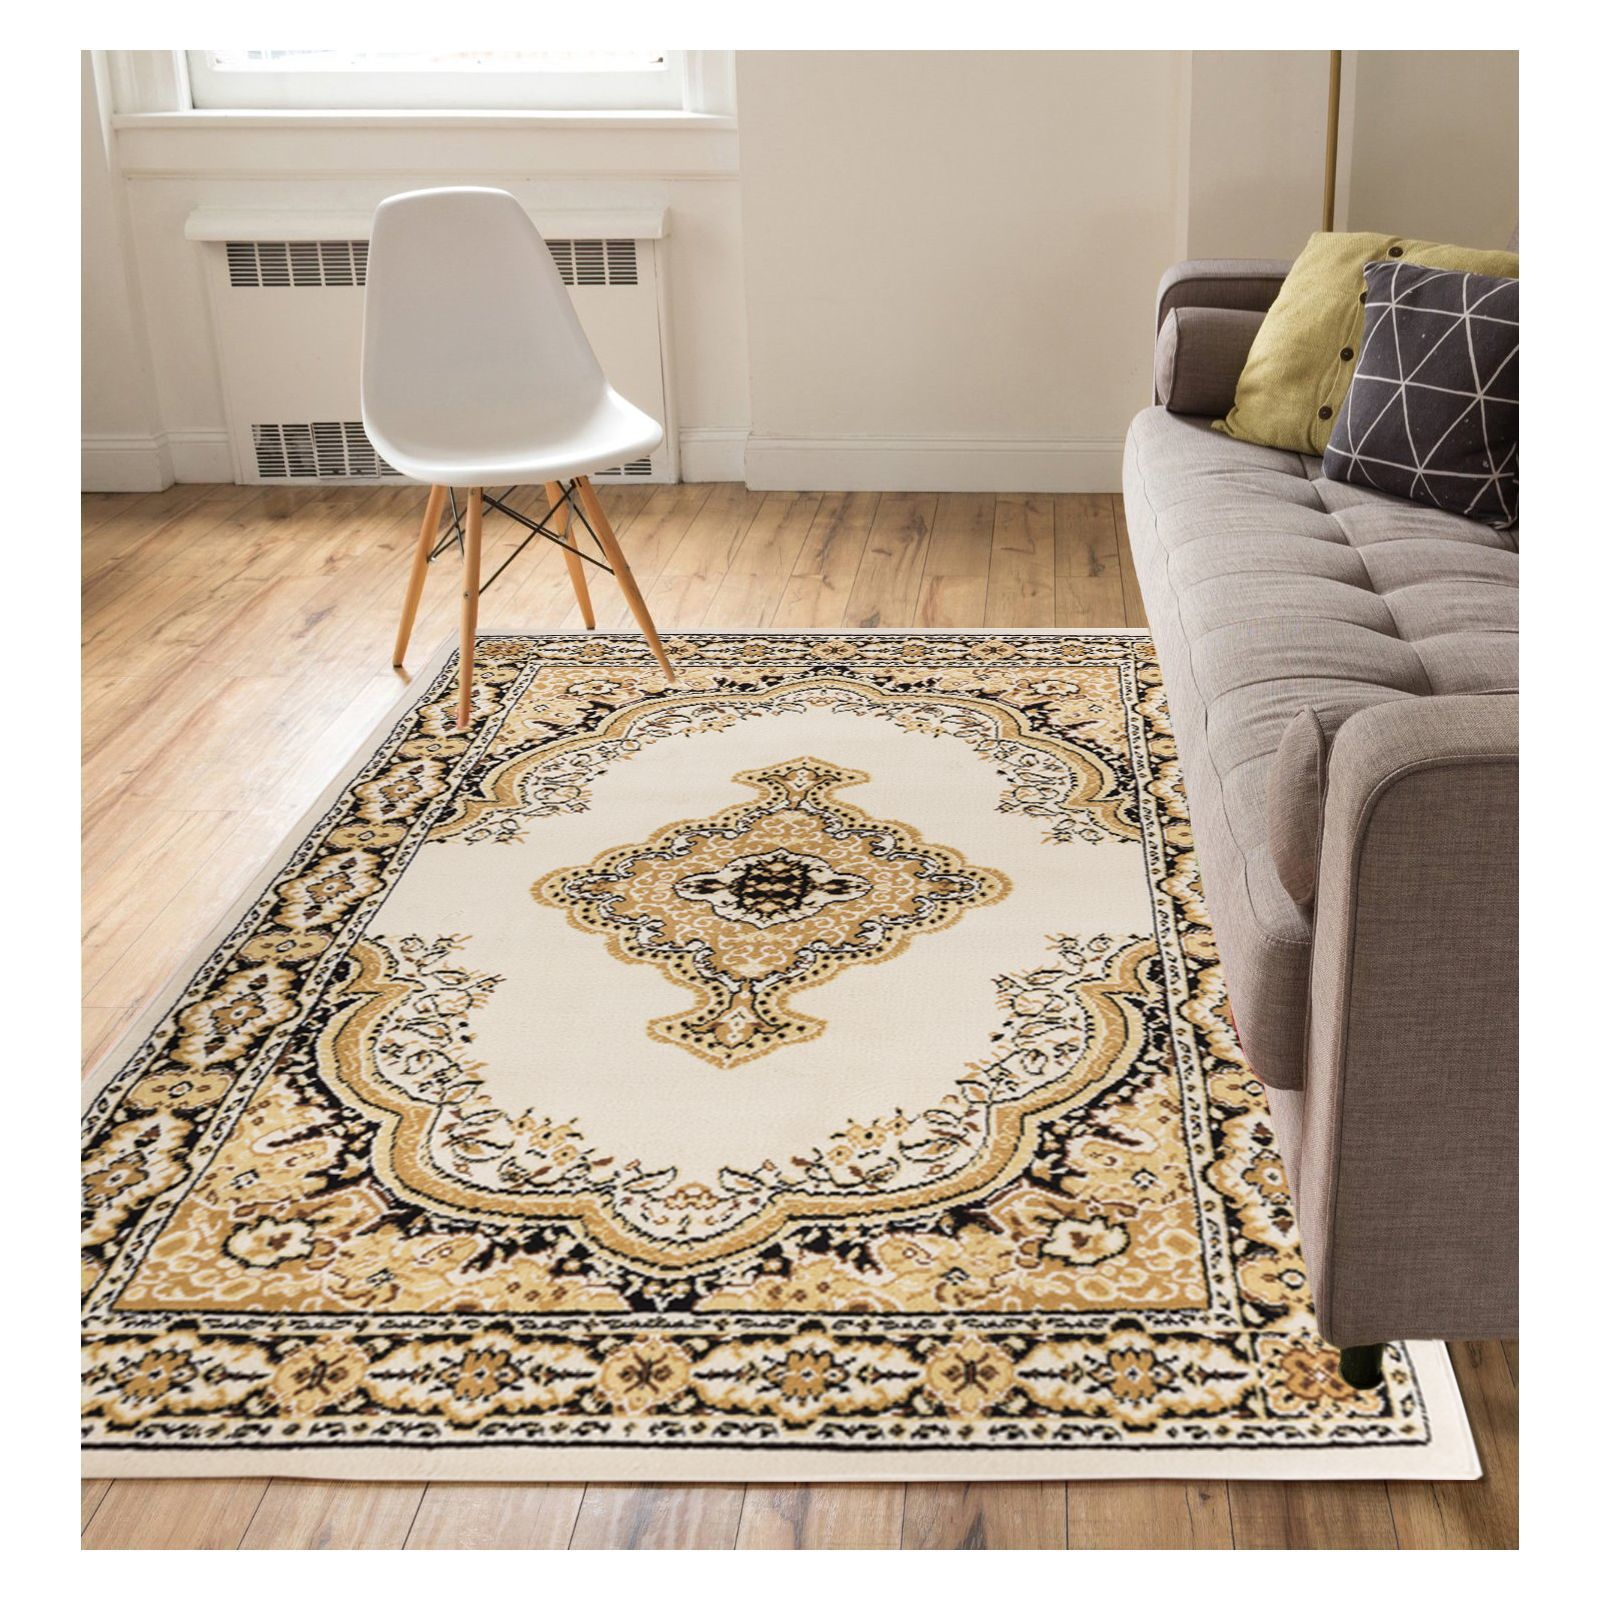 Well Woven Eastgate Traditional Medallion Ivory Area Rug - 311 x 53 (Ivory)